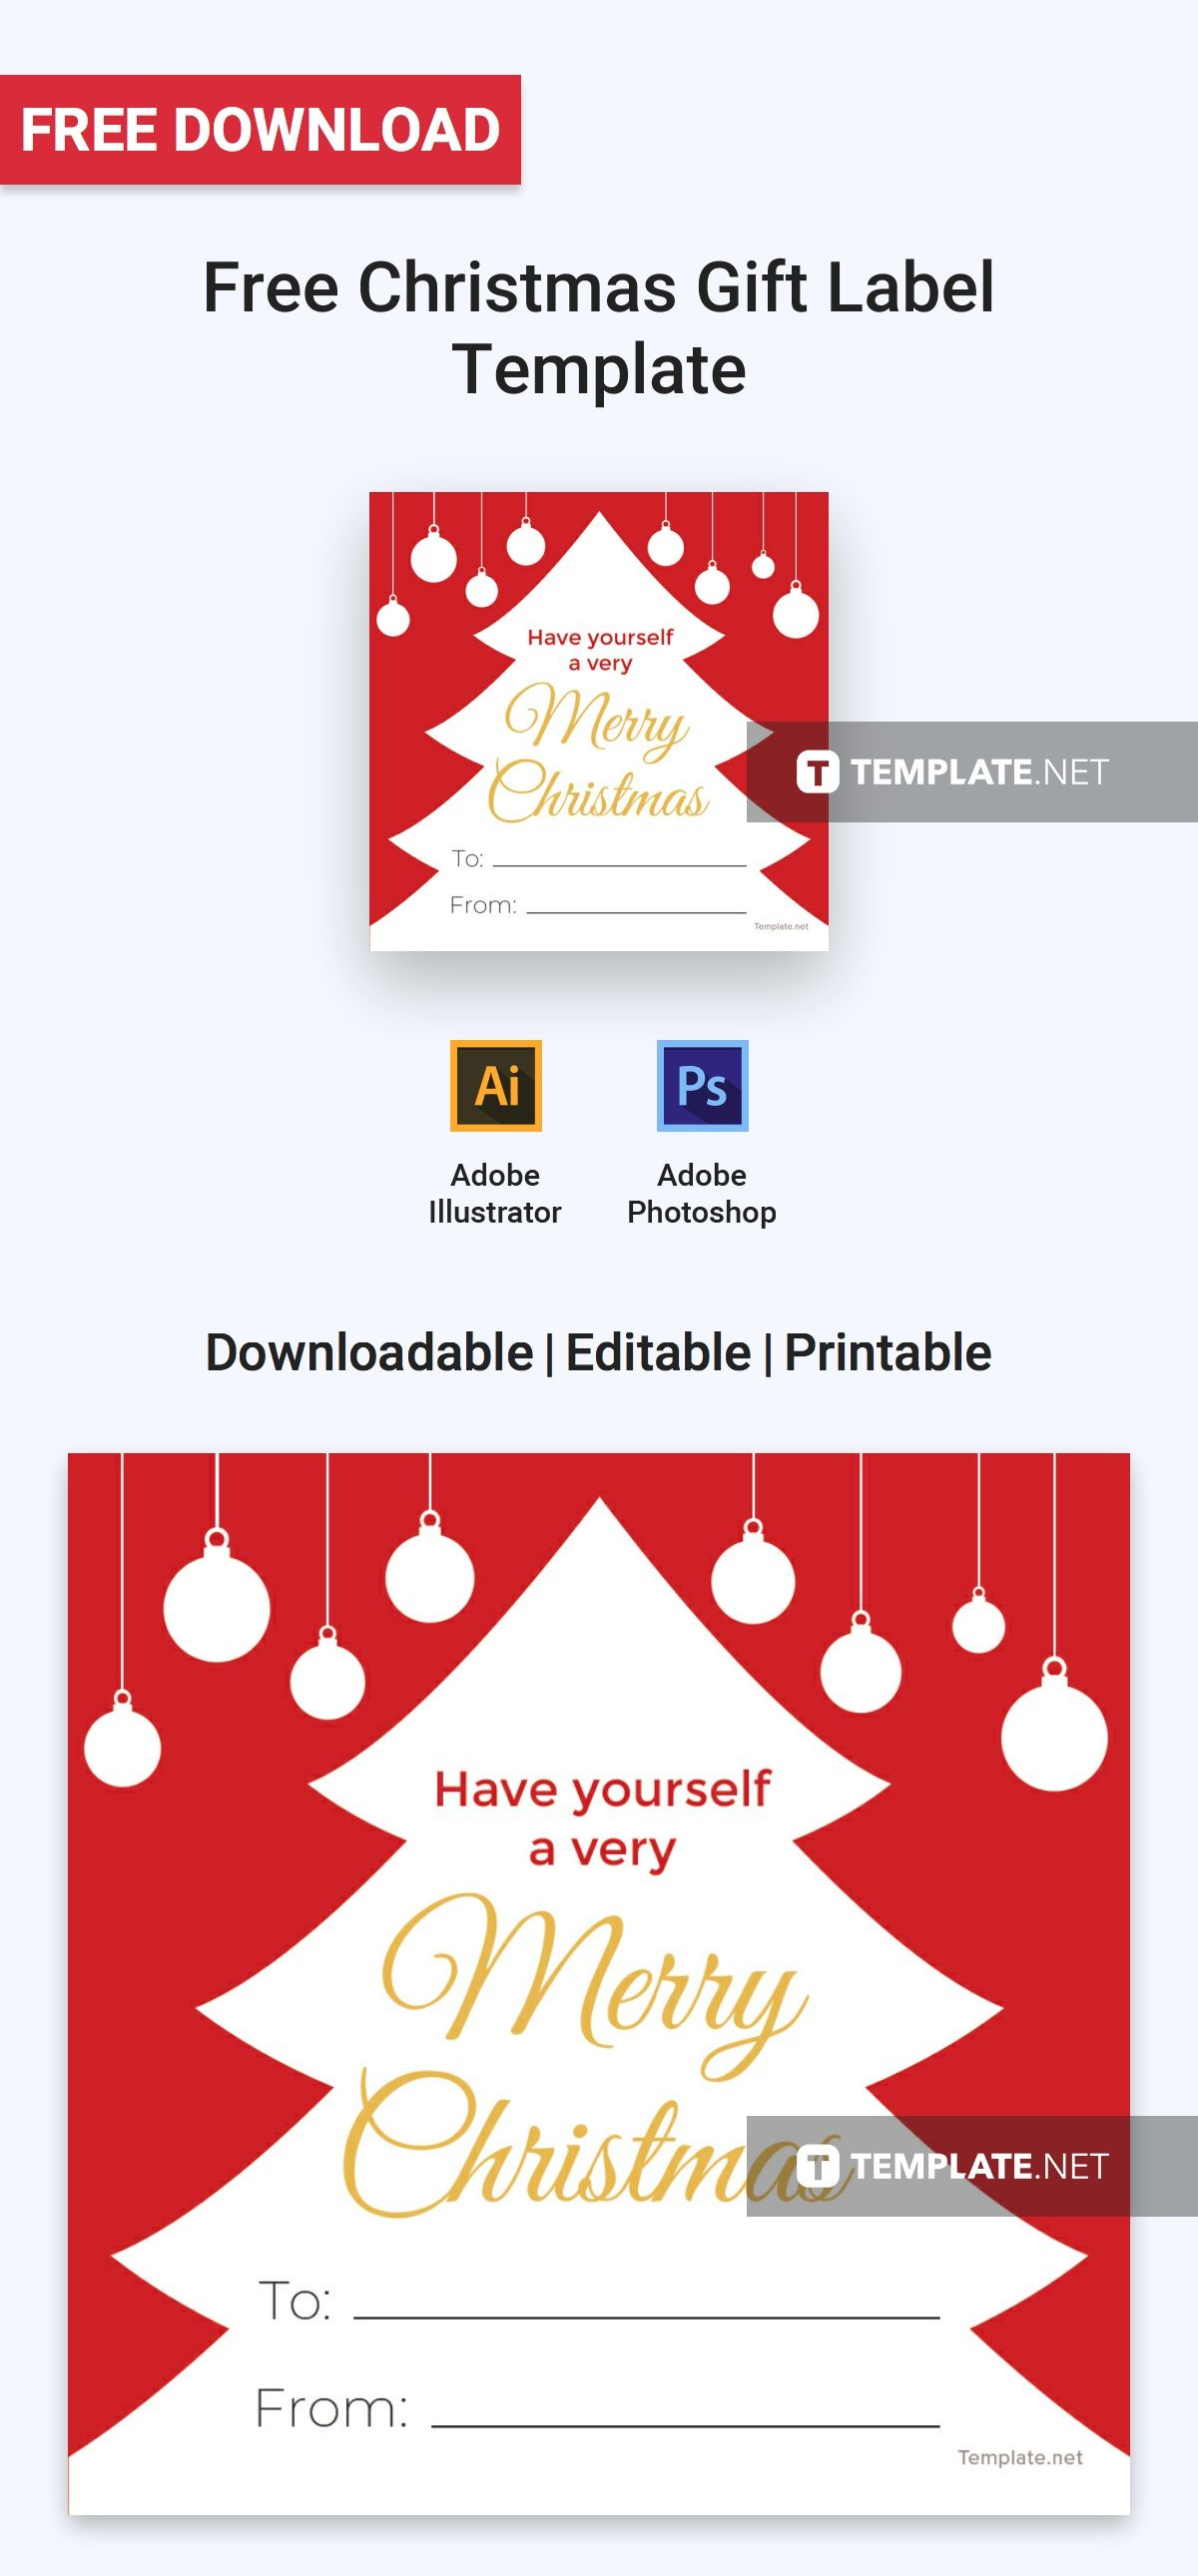 A Label Template That Is Perfect For The Holiday Season Download This For Free And Craft Gift Label Template Free Christmas Gift Labels Gift Labels Christmas